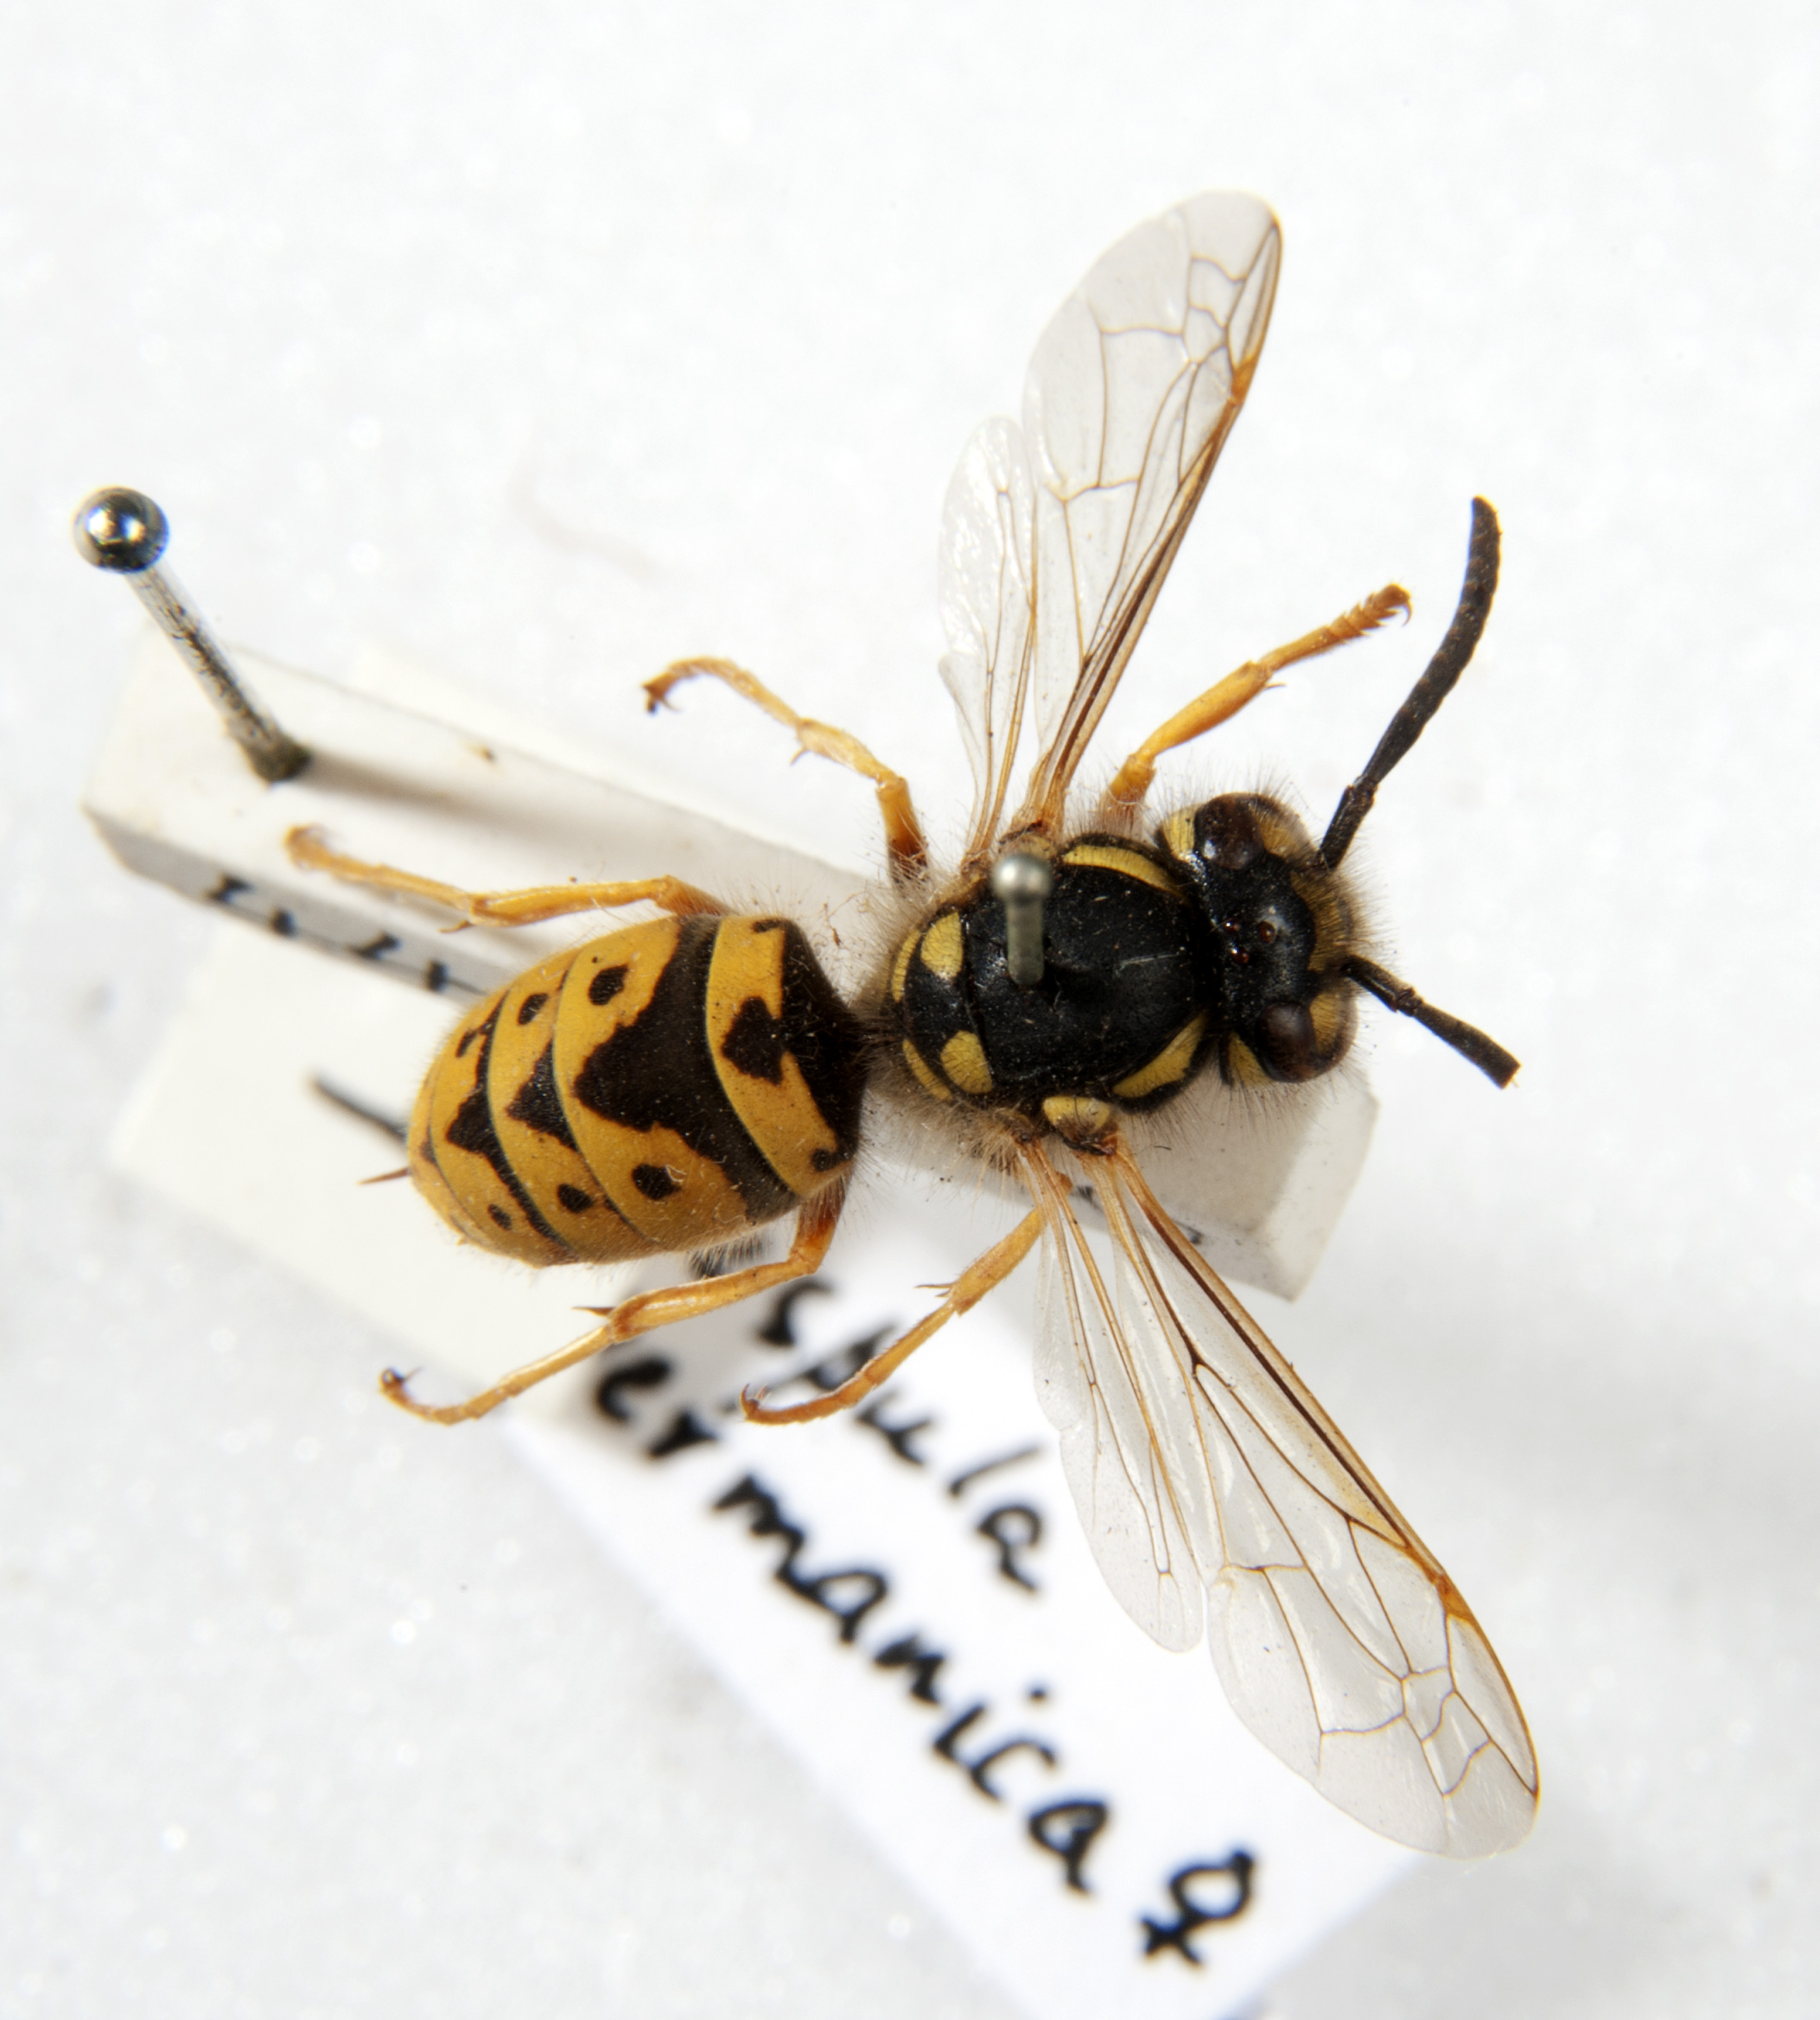 Colour photograph of a pinned wasp from museum collection